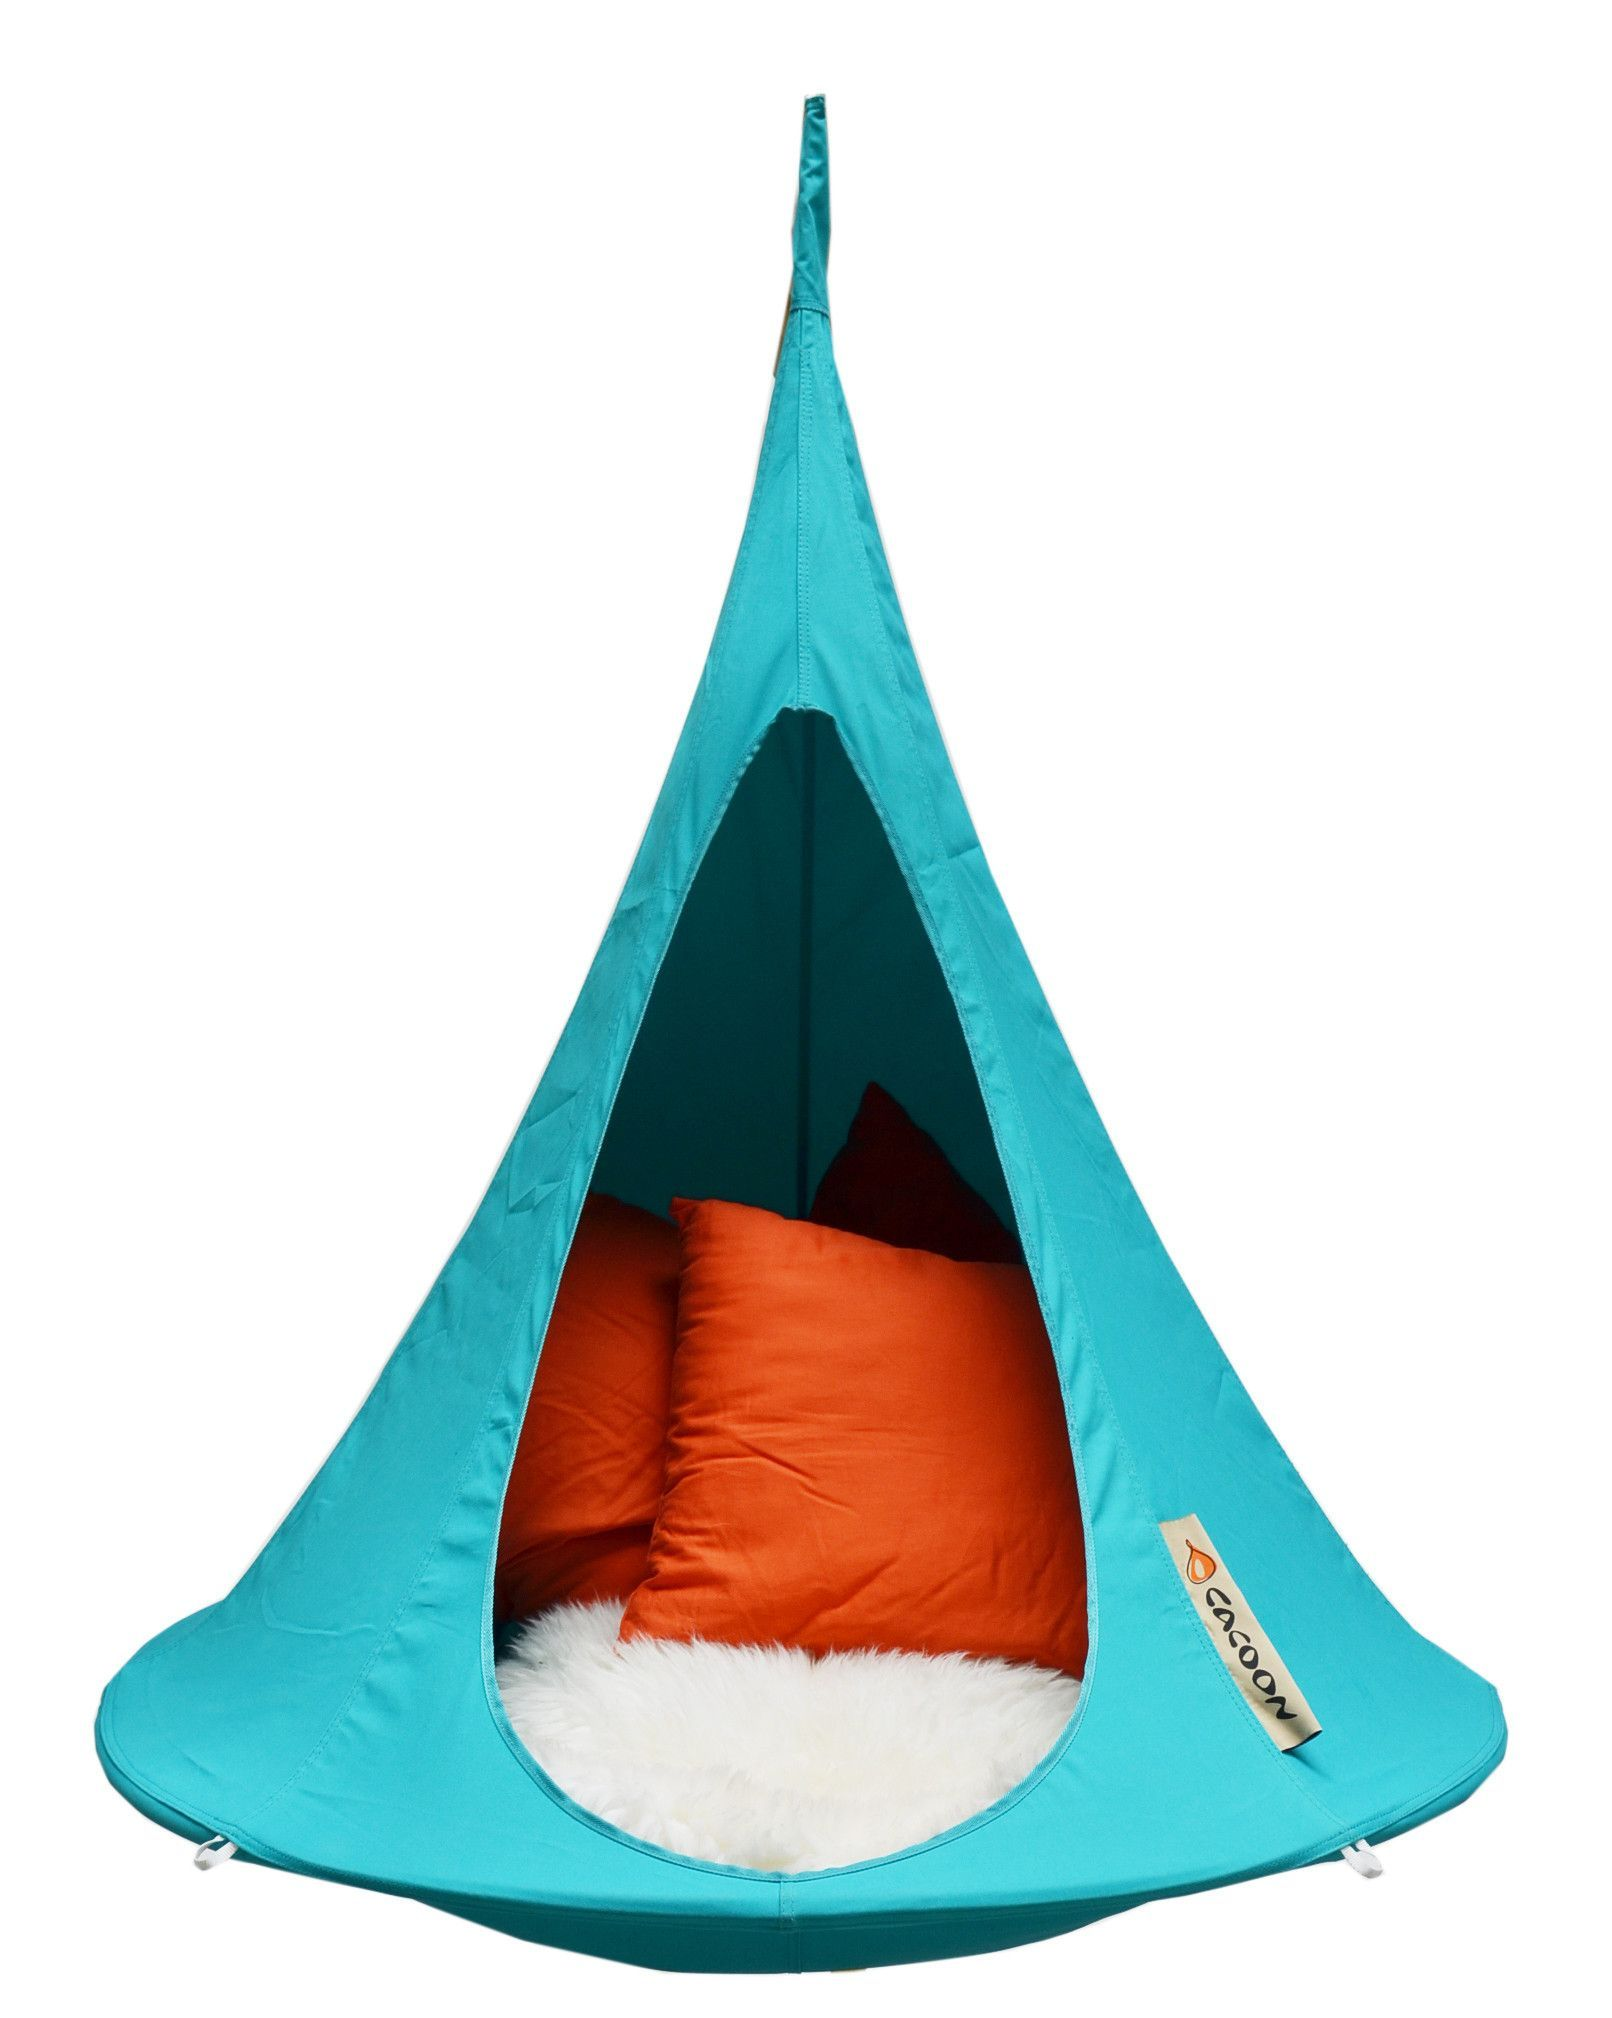 cacoon bonsai hammock   bright blue cacoon bonsai hammock   bright blue   hanging tent  rh   pinterest